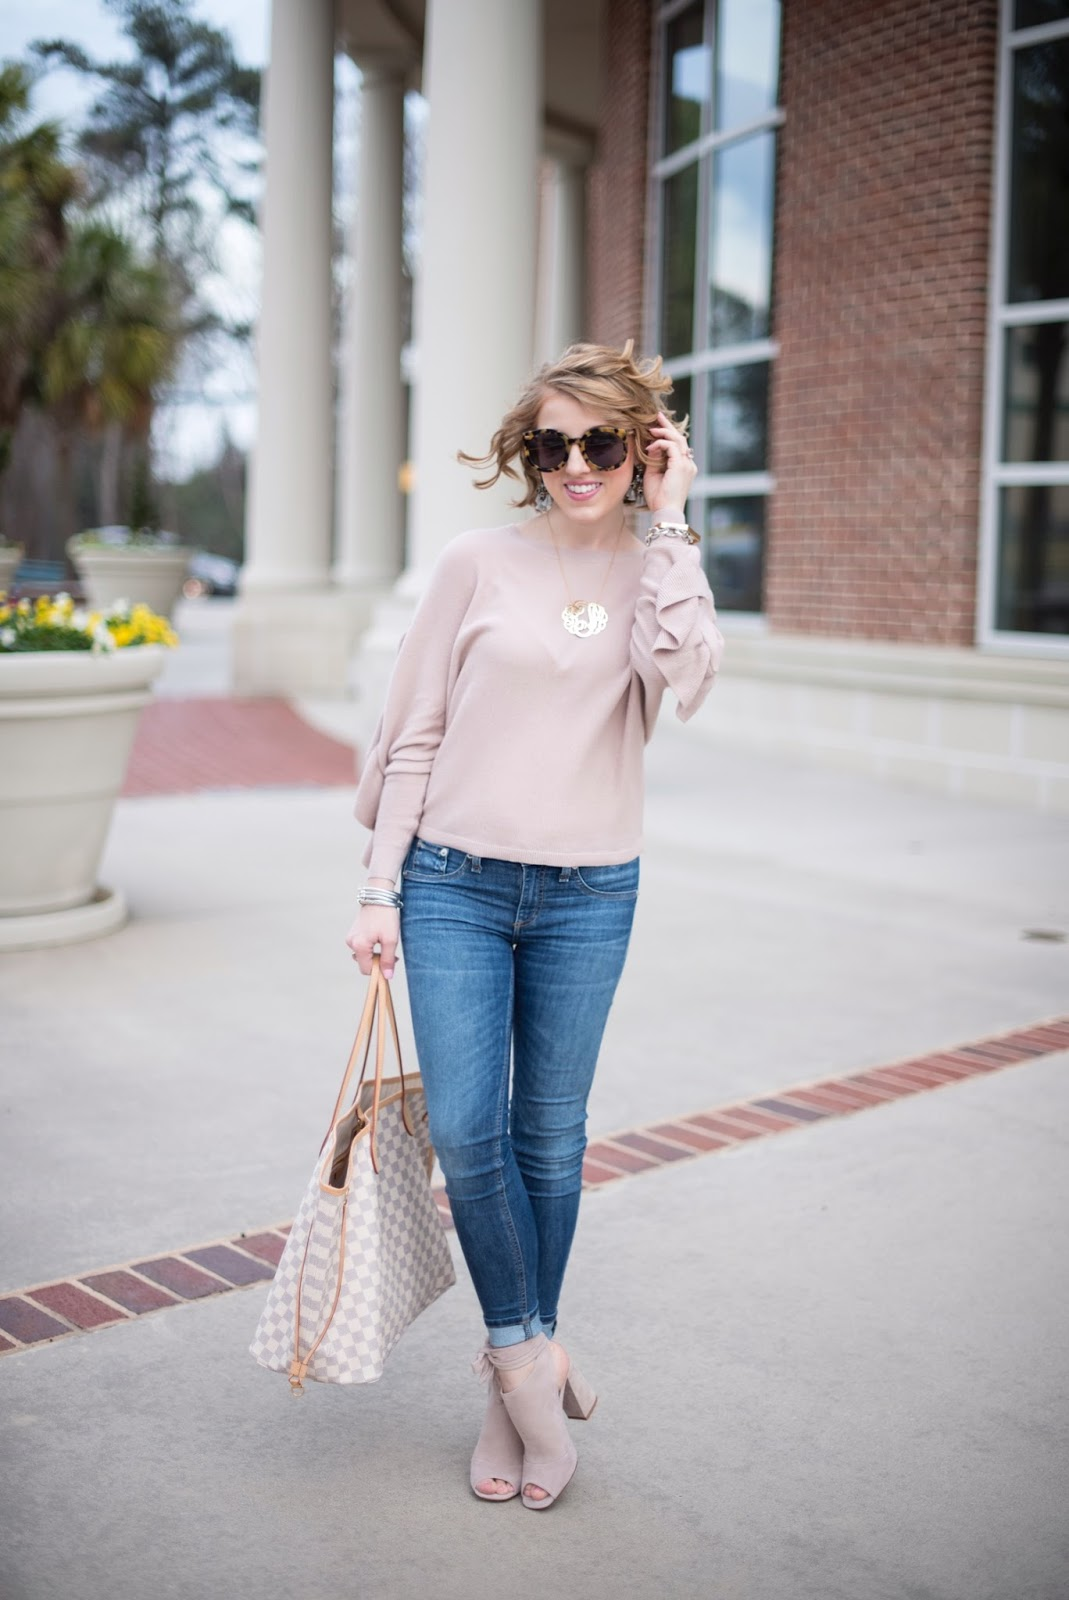 Blush Pink Sweater - Something Delightful Blog